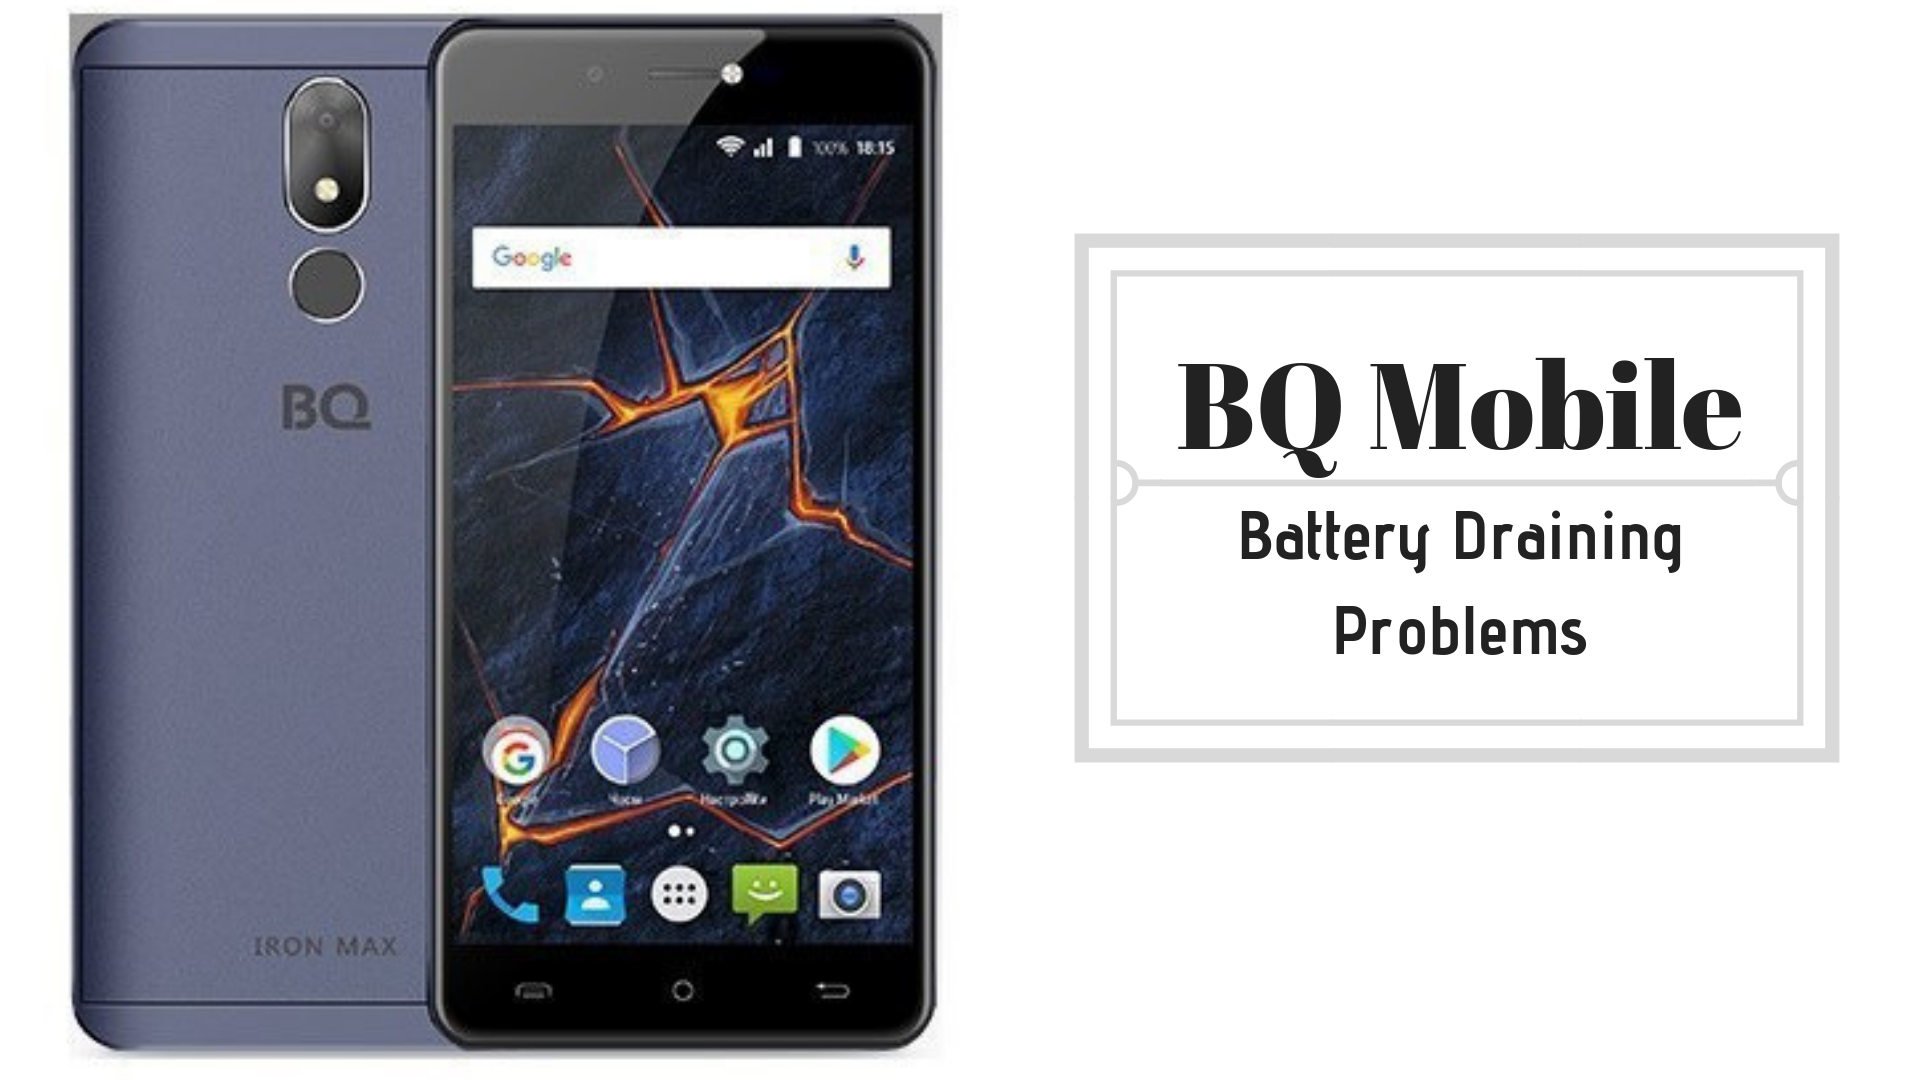 How to Fix BQ Mobile Battery Draining Problems - Troubleshooting and Fixes